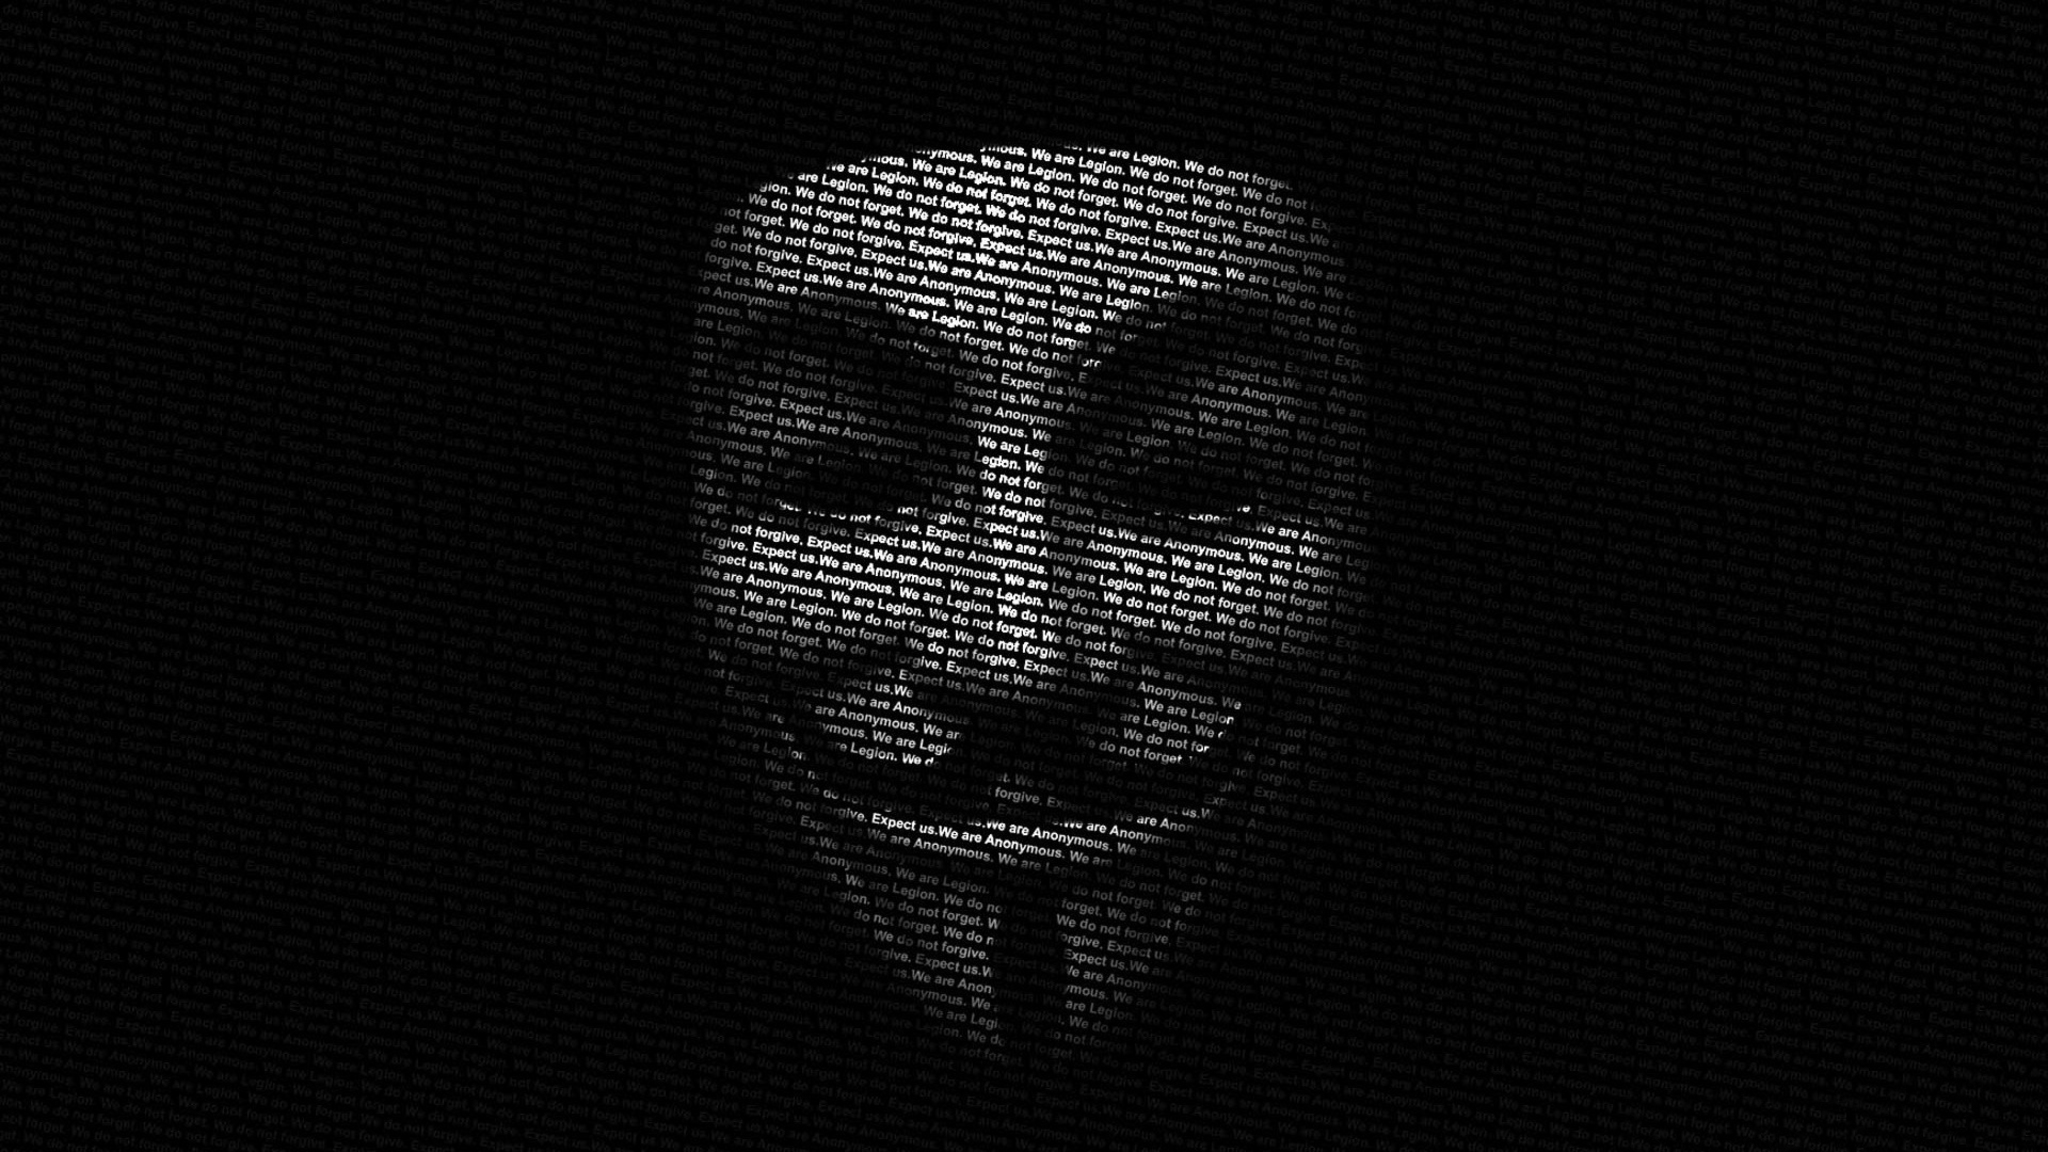 2048x1152 Anonymus Hacker 2048x1152 Resolution Hd 4k Wallpapers Images Backgrounds Photos And Pictures